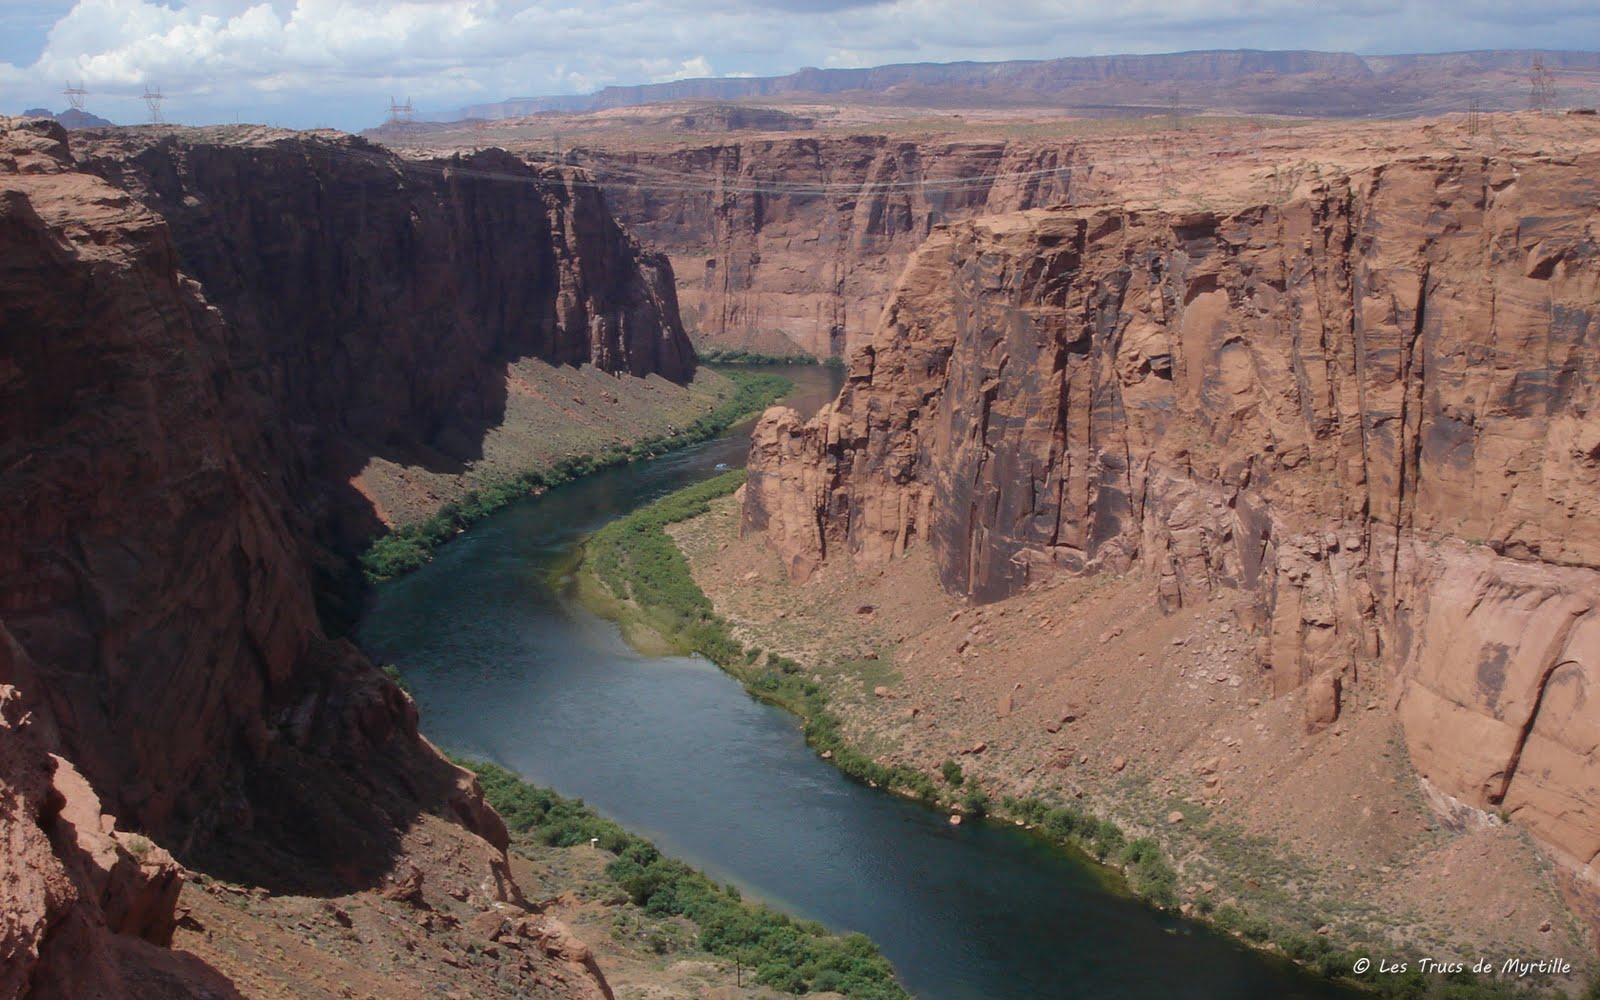 http://1.bp.blogspot.com/_ImSsWG17-Bs/TH0STjFjkII/AAAAAAAADWE/9ObMbf2Iz8s/s1600/colorado-glen-canyon_1680x1050.jpg